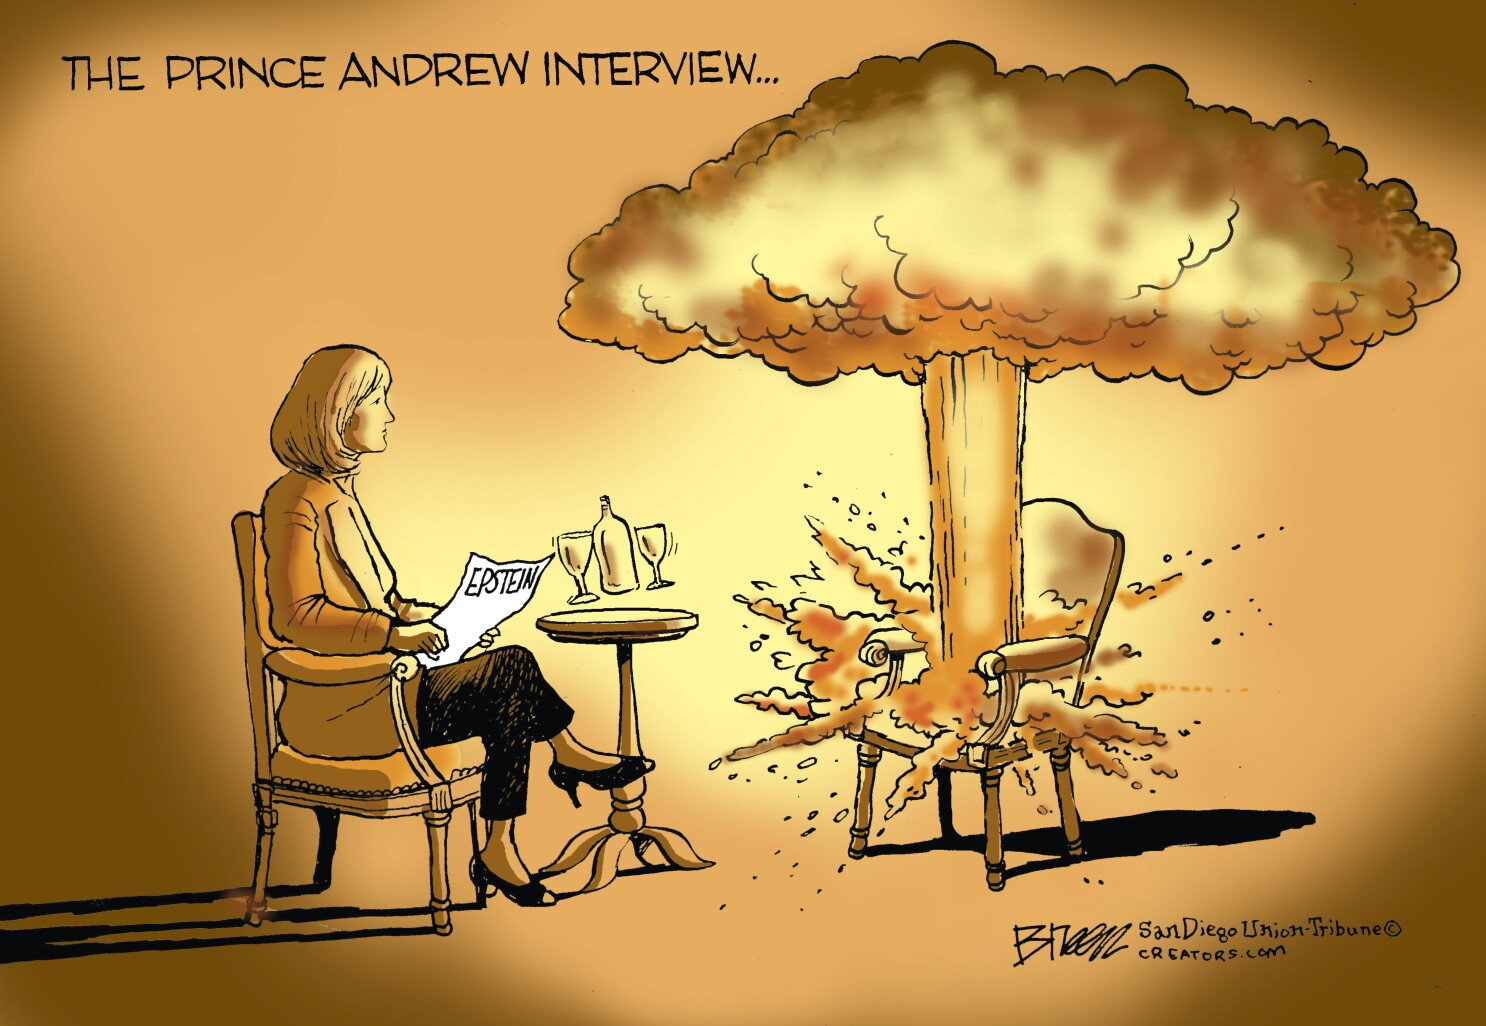 Prince Andrew Interview About Epstein A Pr Disaster The San